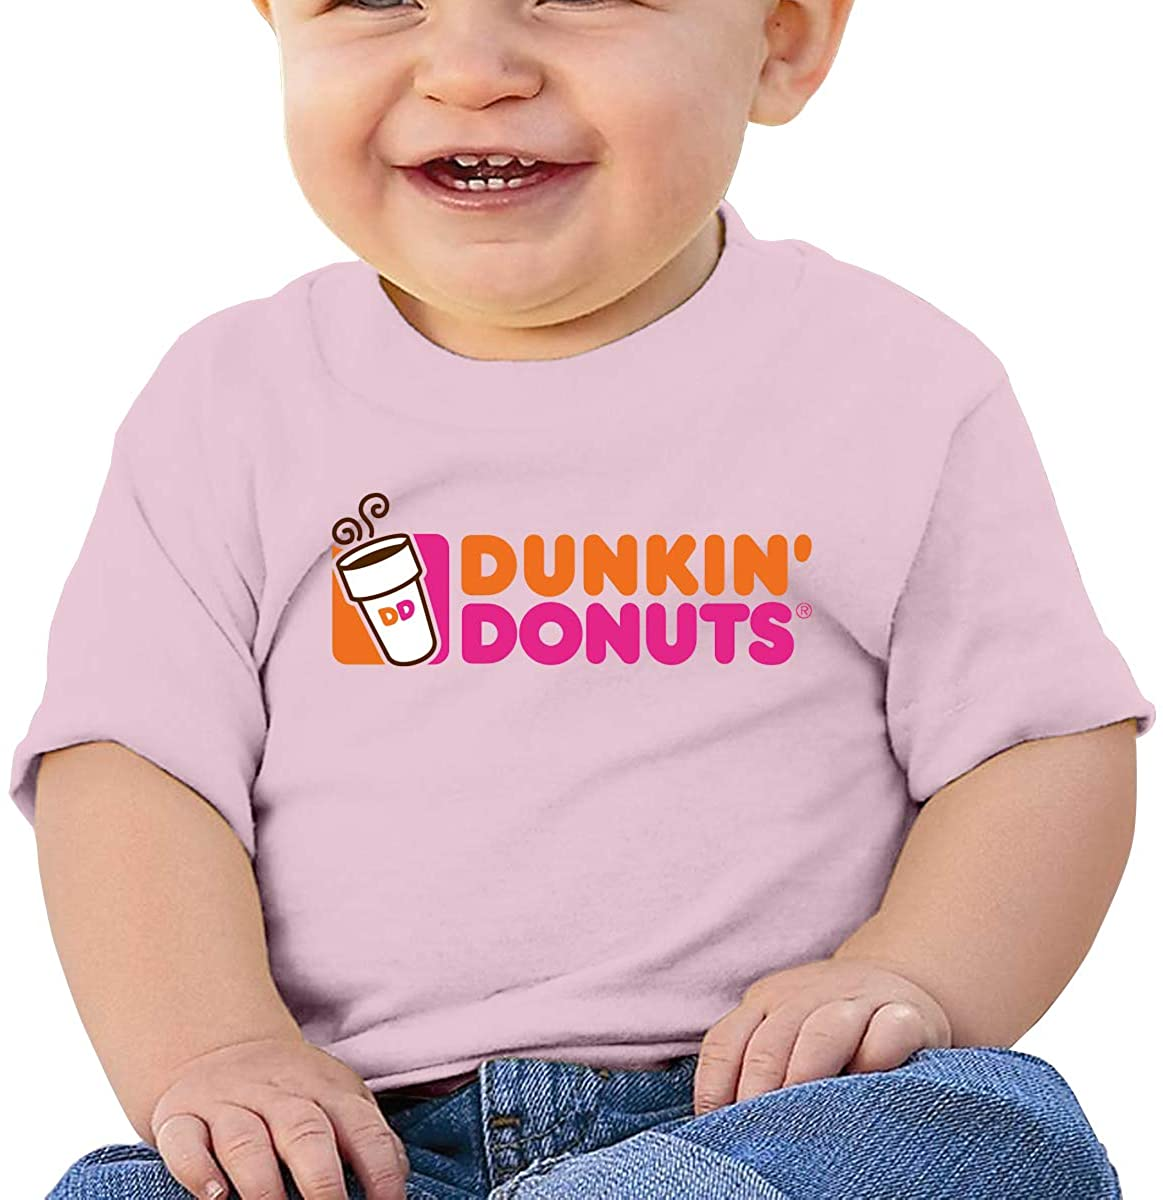 Dunkin Donuts Comfortable and Breathable Skin-Friendly Baby Short-Sleeved T-Shirt Pink